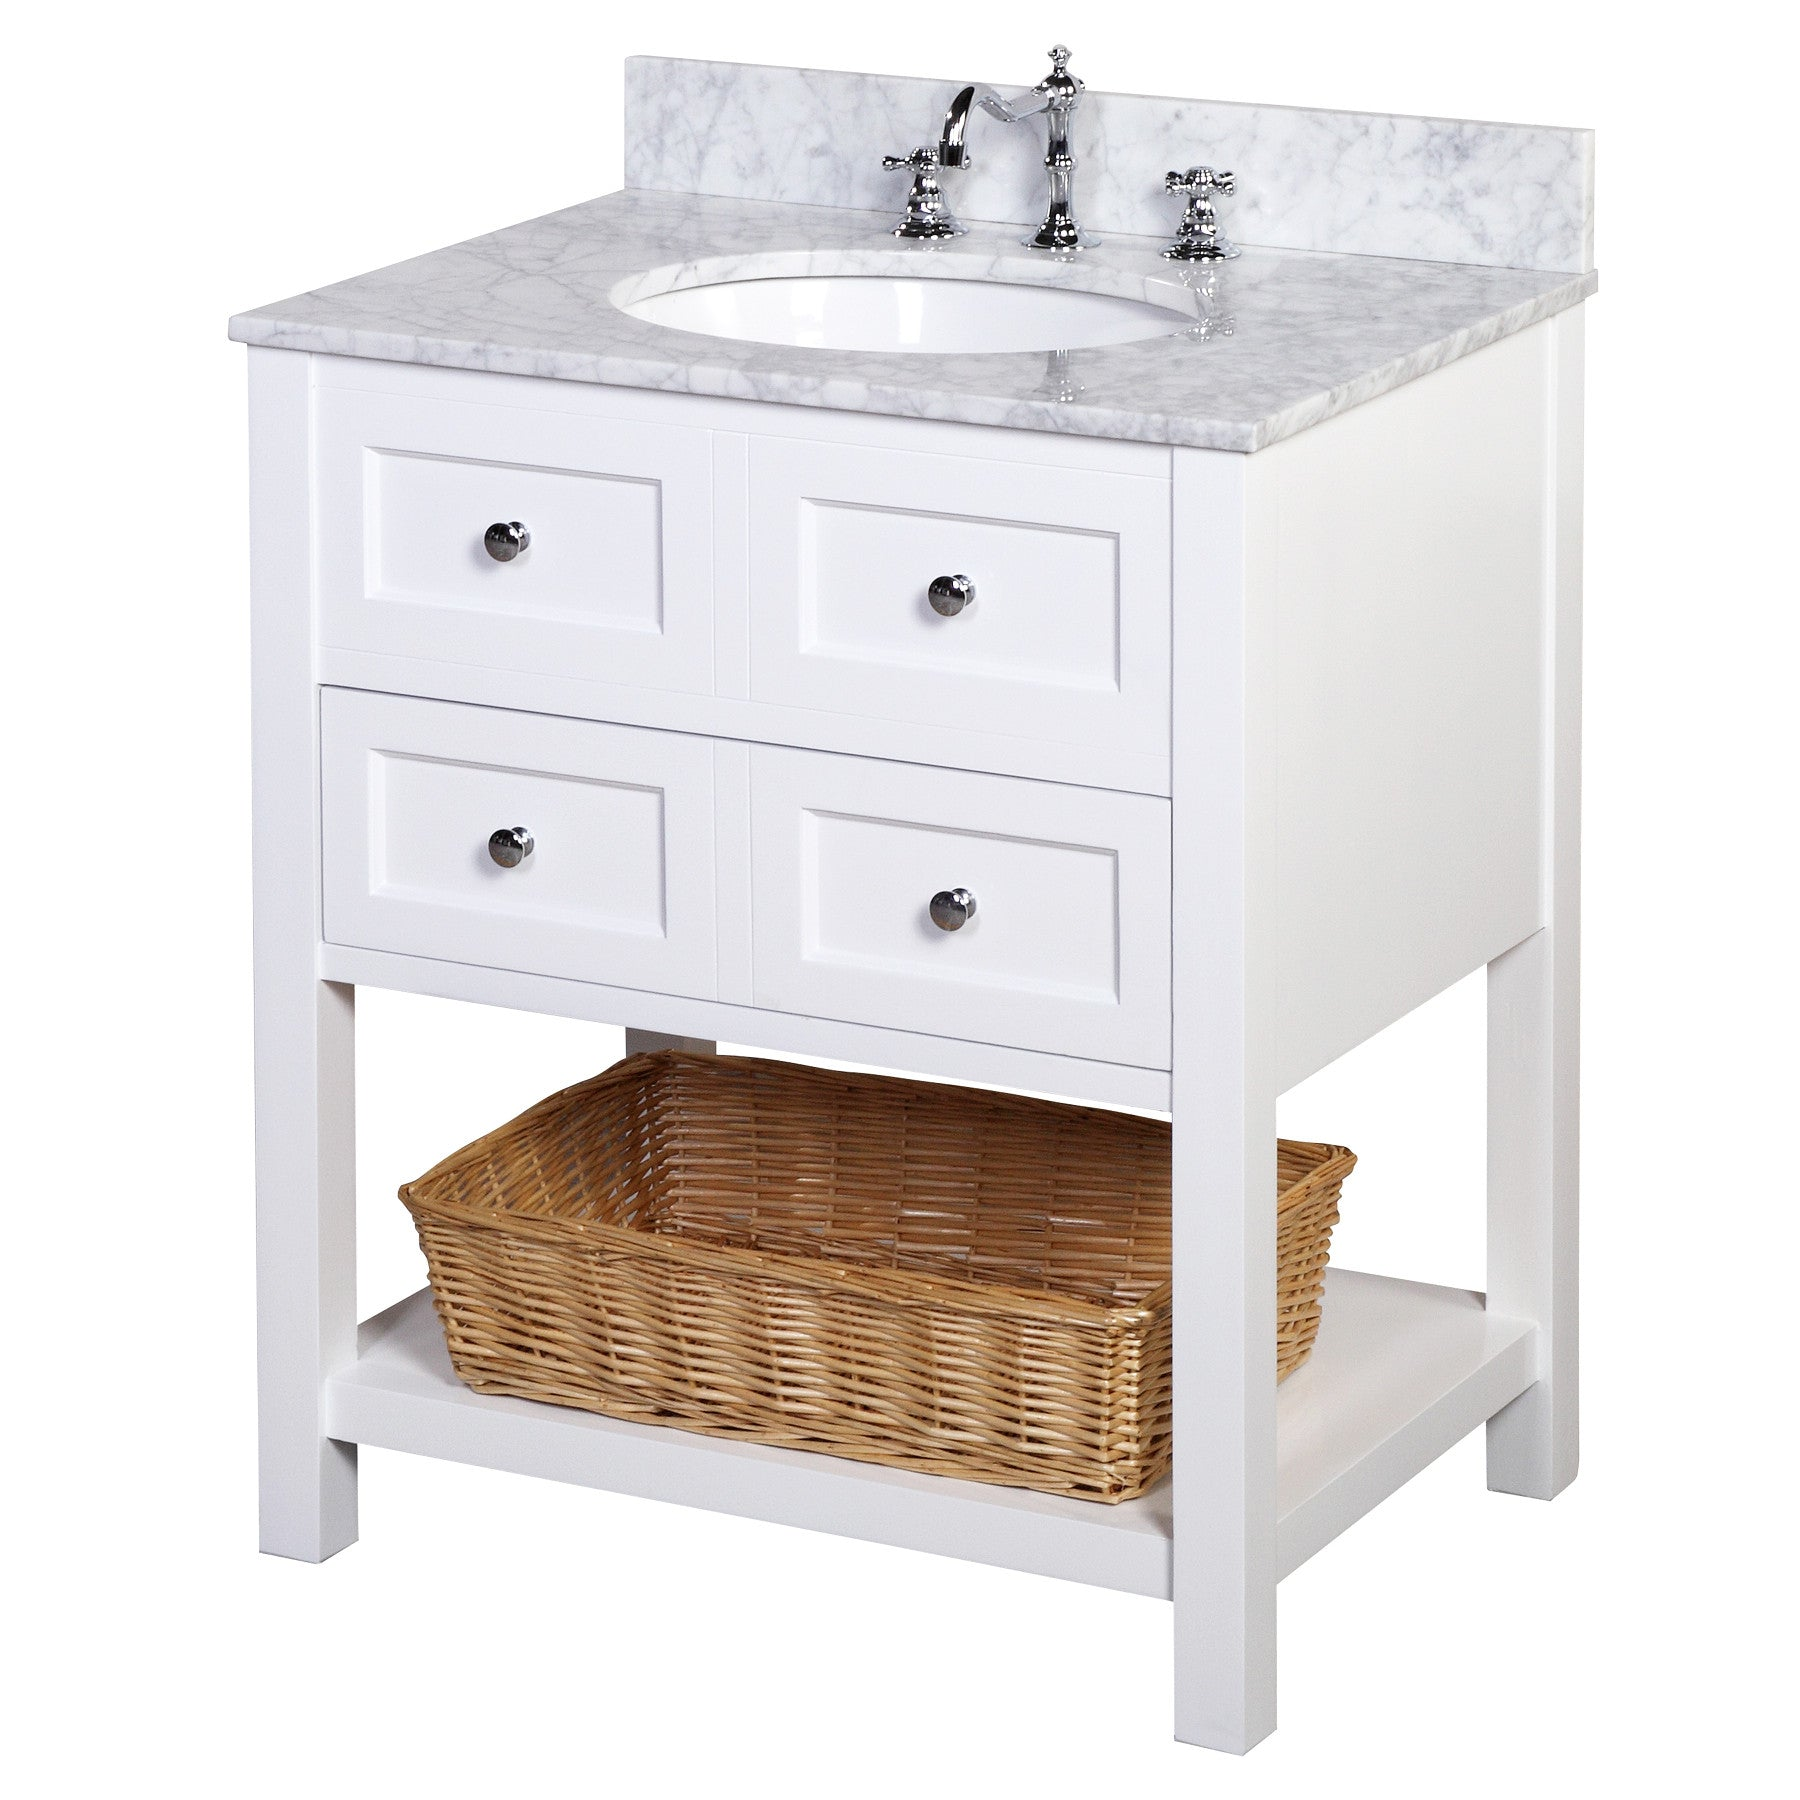 New Yorker Kitchen Cabinets New Yorker 30 Inch Vanity Carrara White Kitchenbathcollection